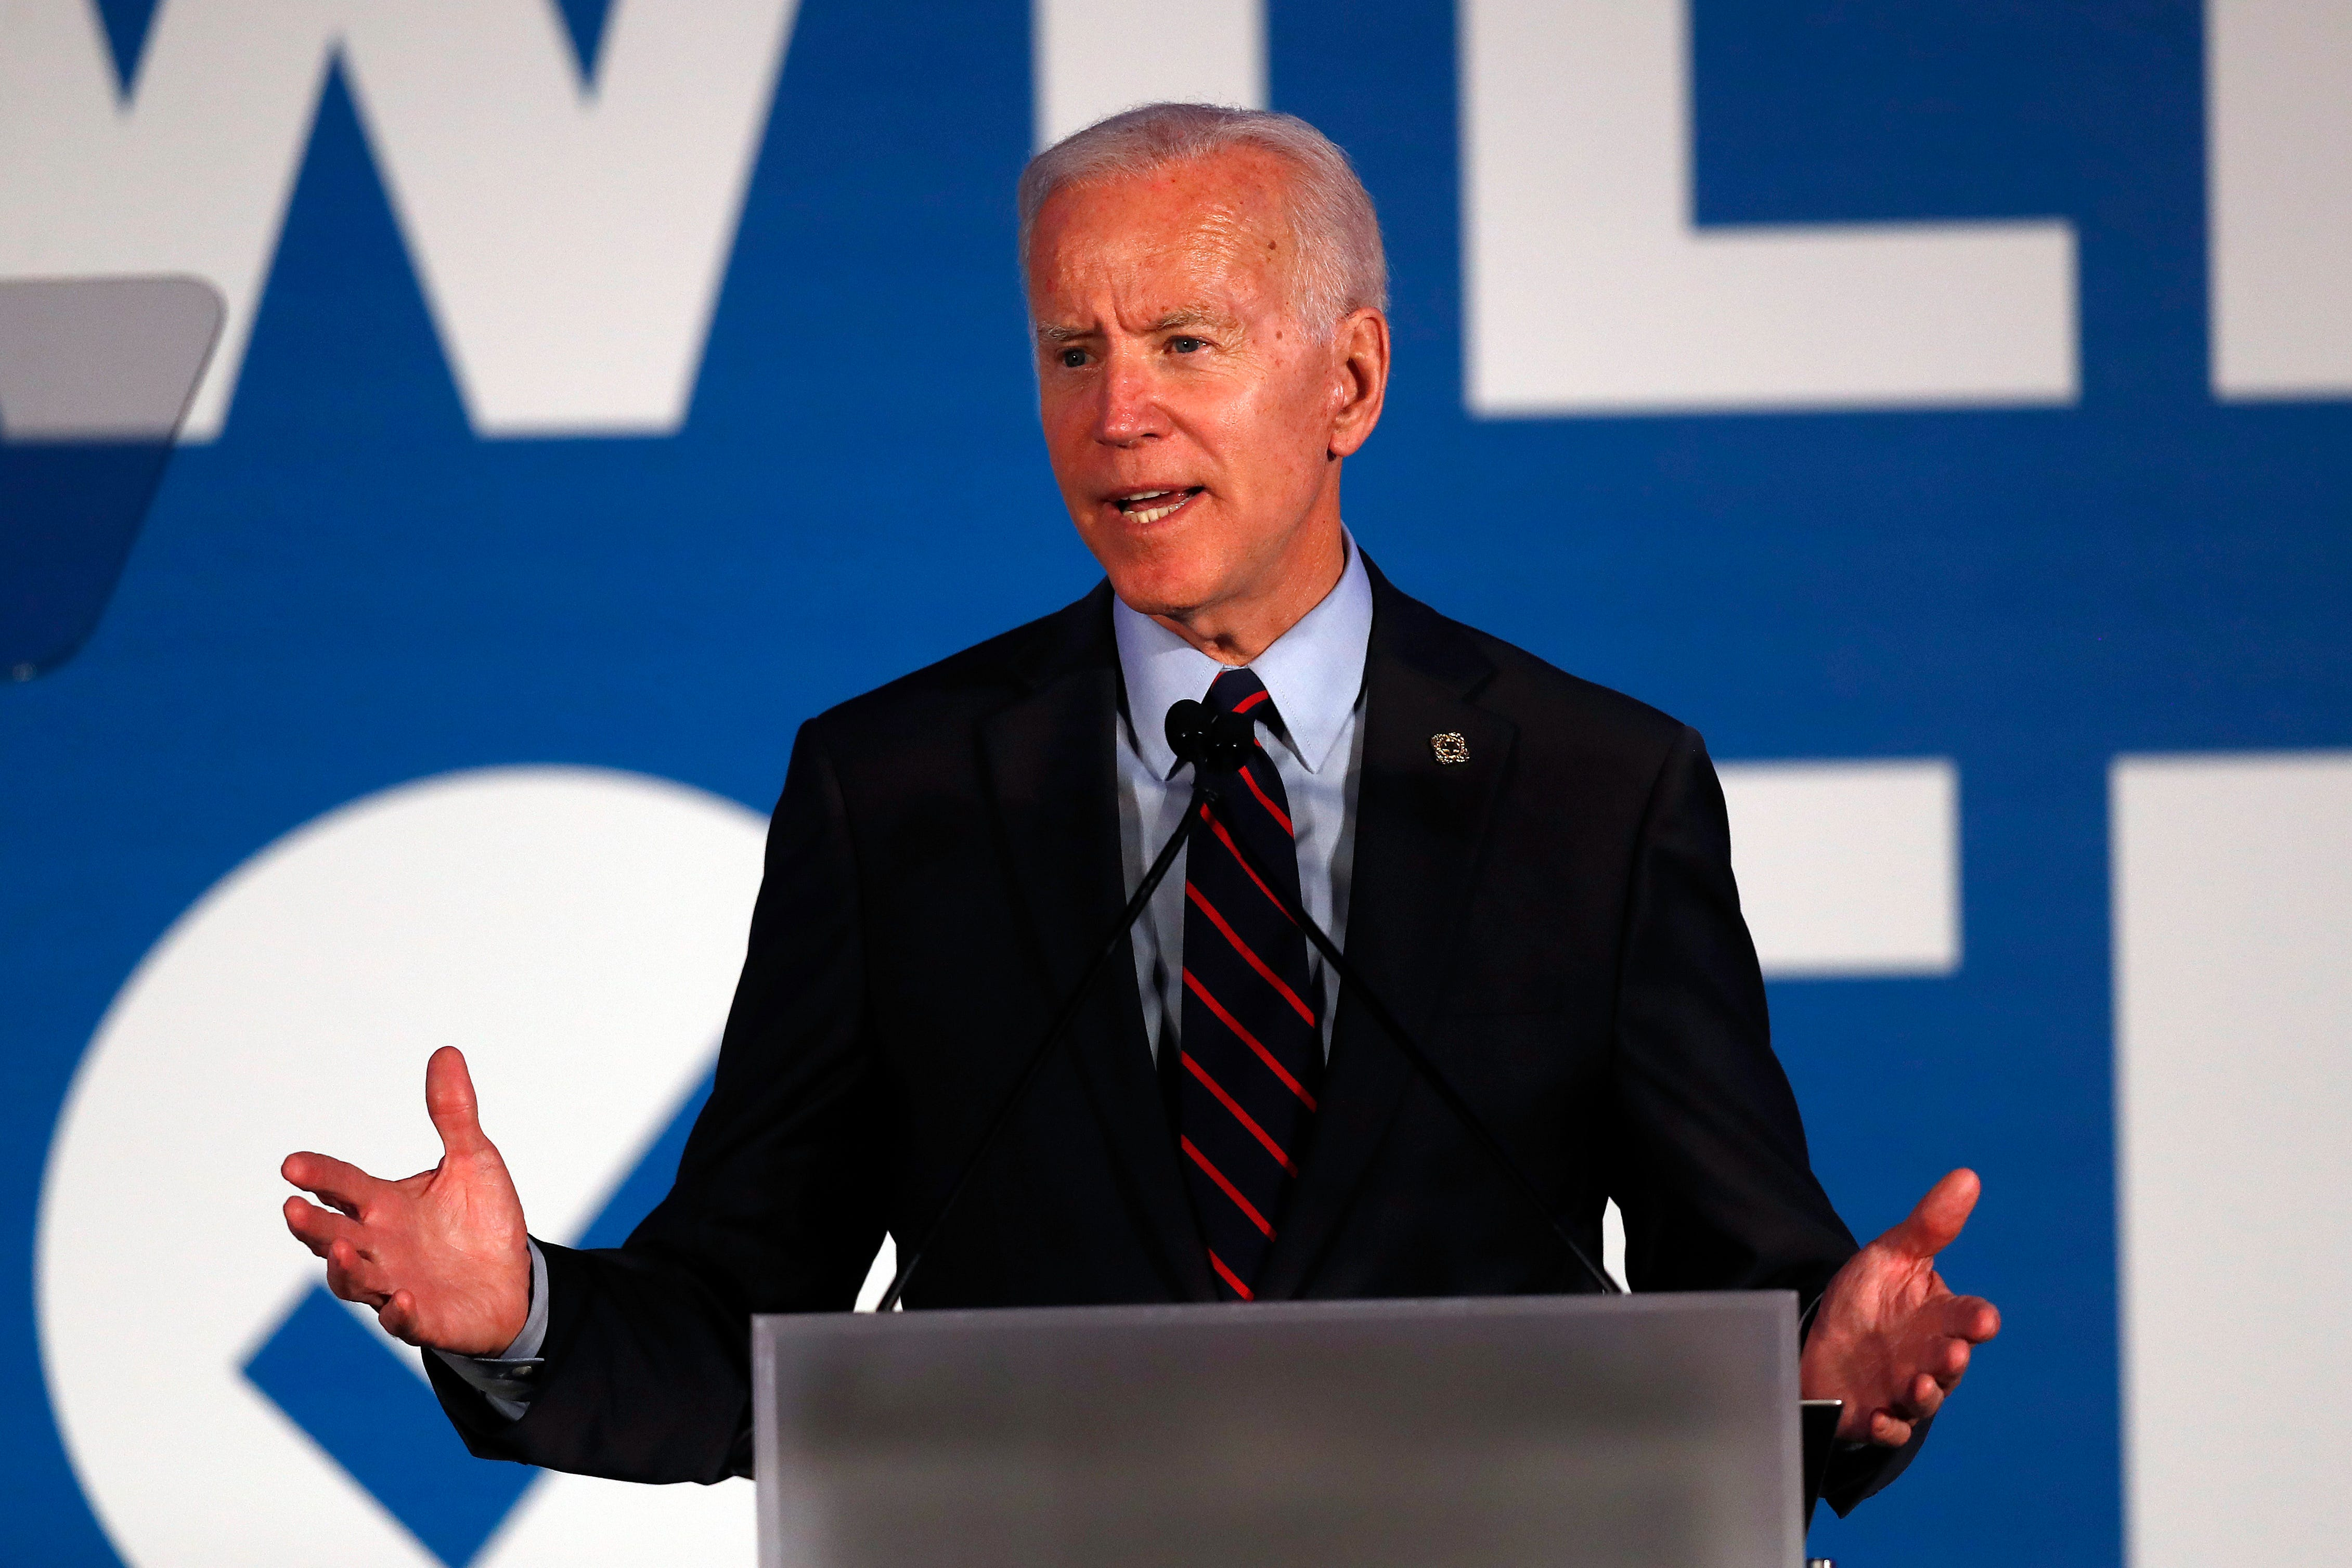 Joe Biden holds final interviews with VP candidates as he looks to announce pick next week